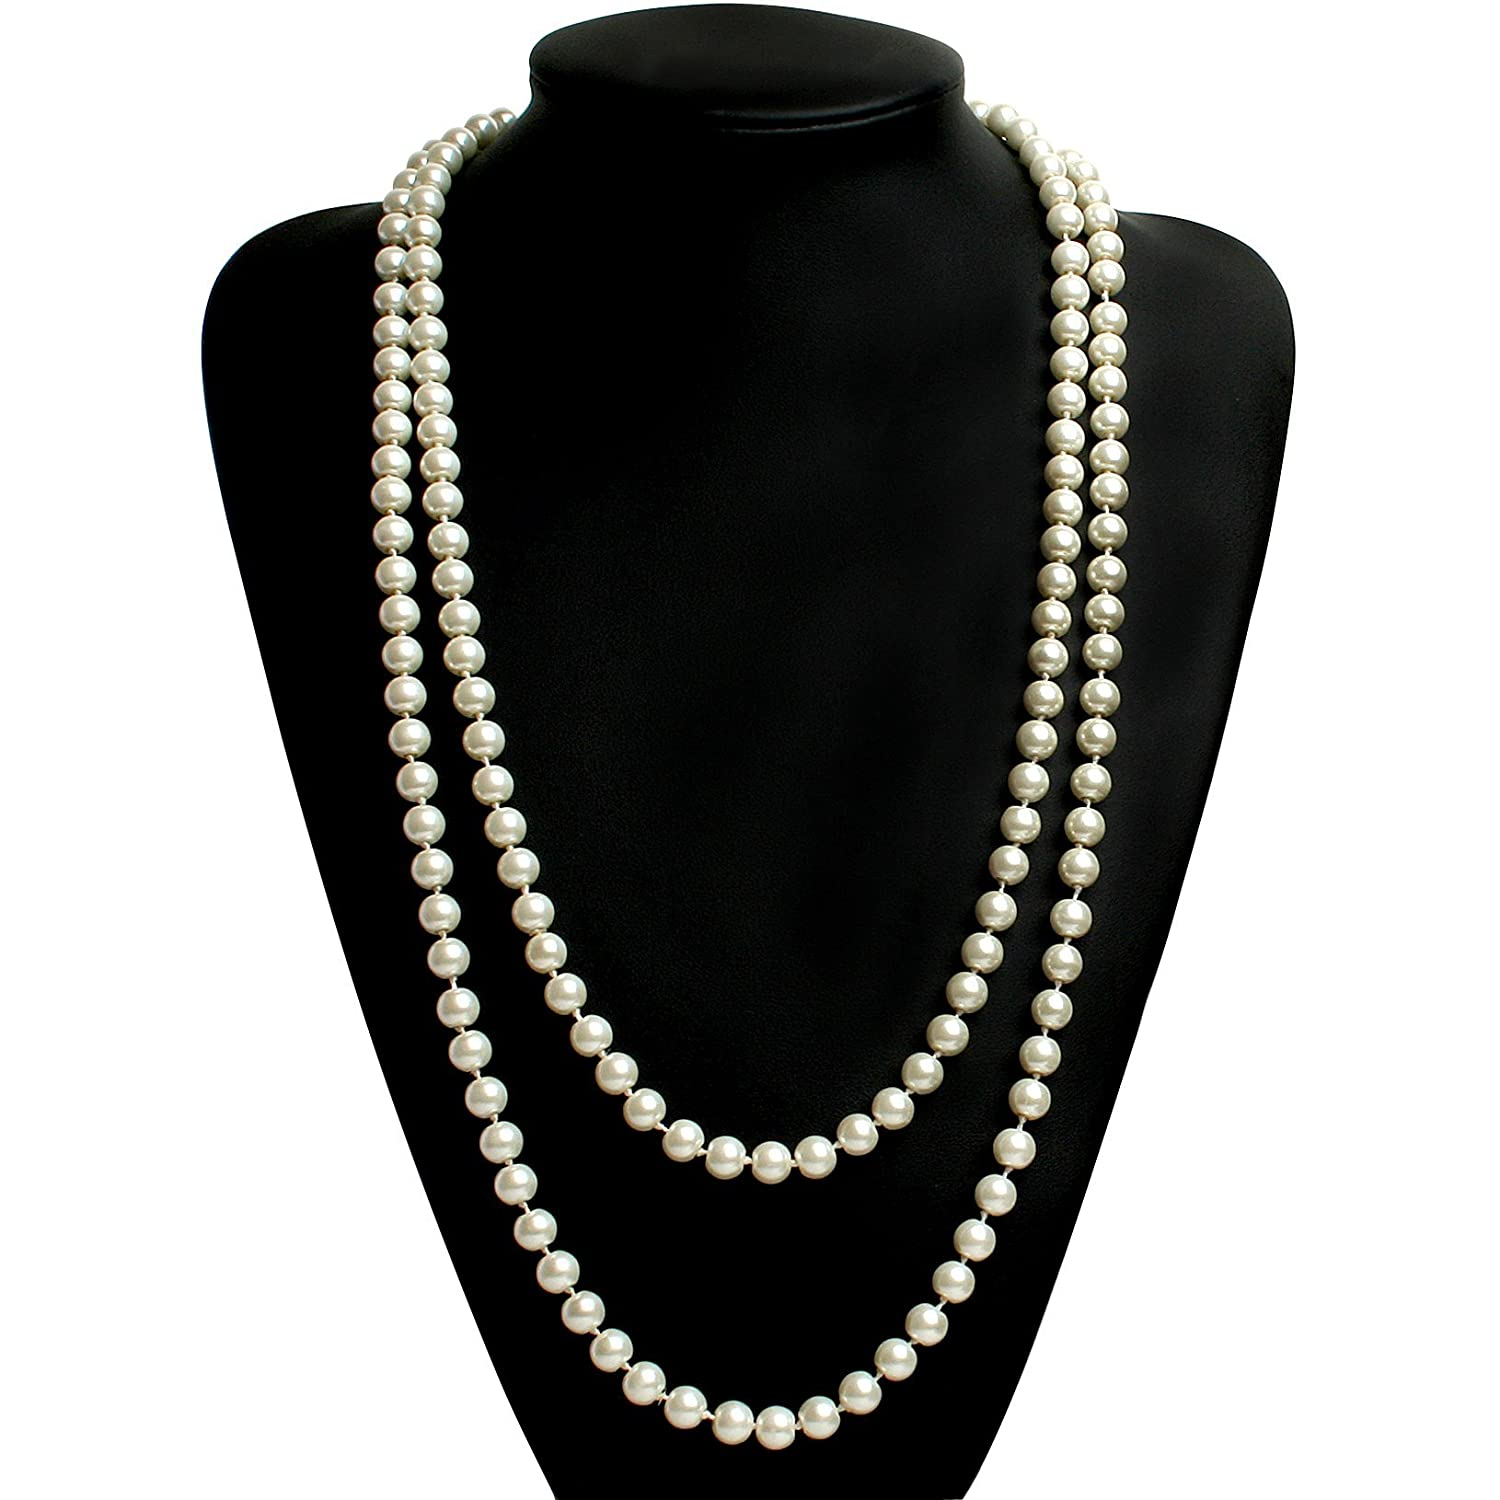 BABEYOND® ART DECO Fashion Faux Pearls Flapper Beads Cluster Long Pearl Necklace 55 CA-longlace